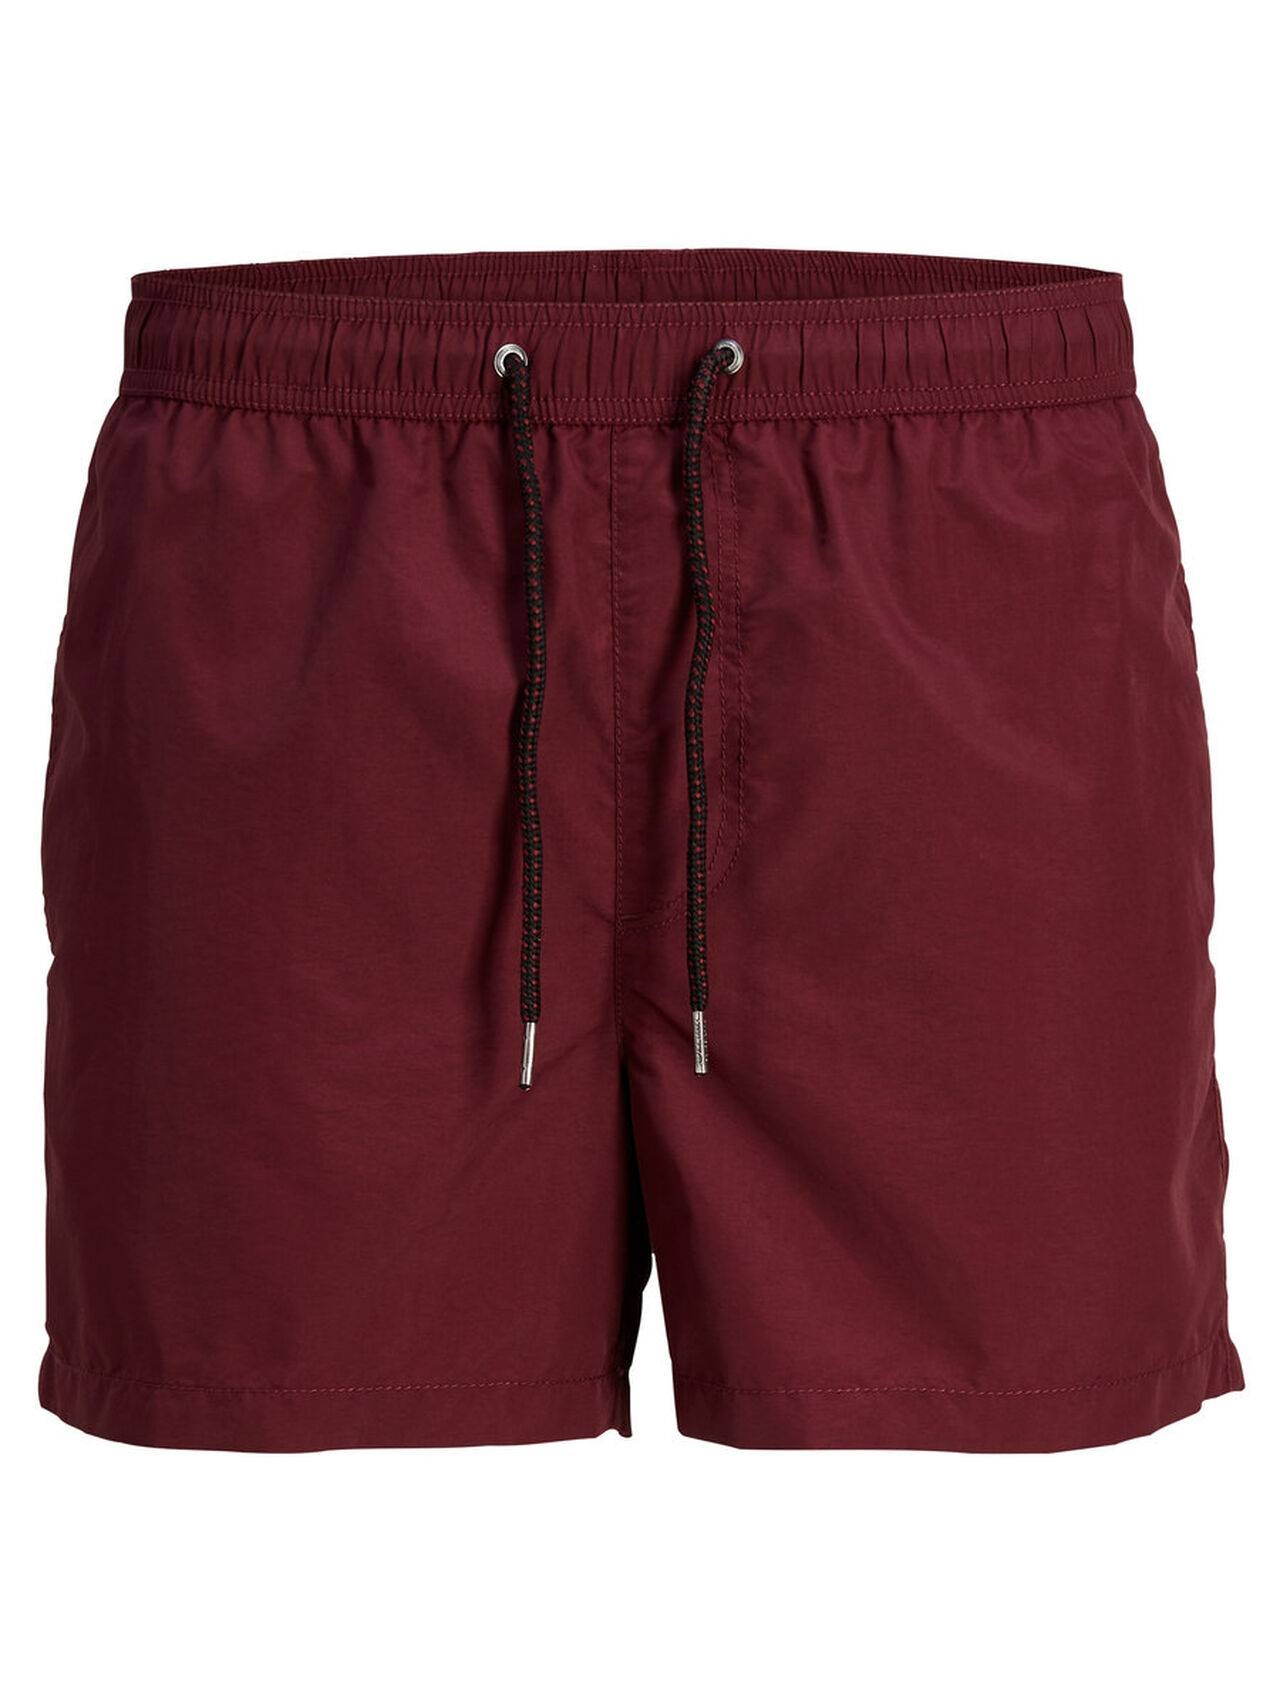 JACK & JONES Sunset Ww Sts Swimshorts Men Red Burgundy